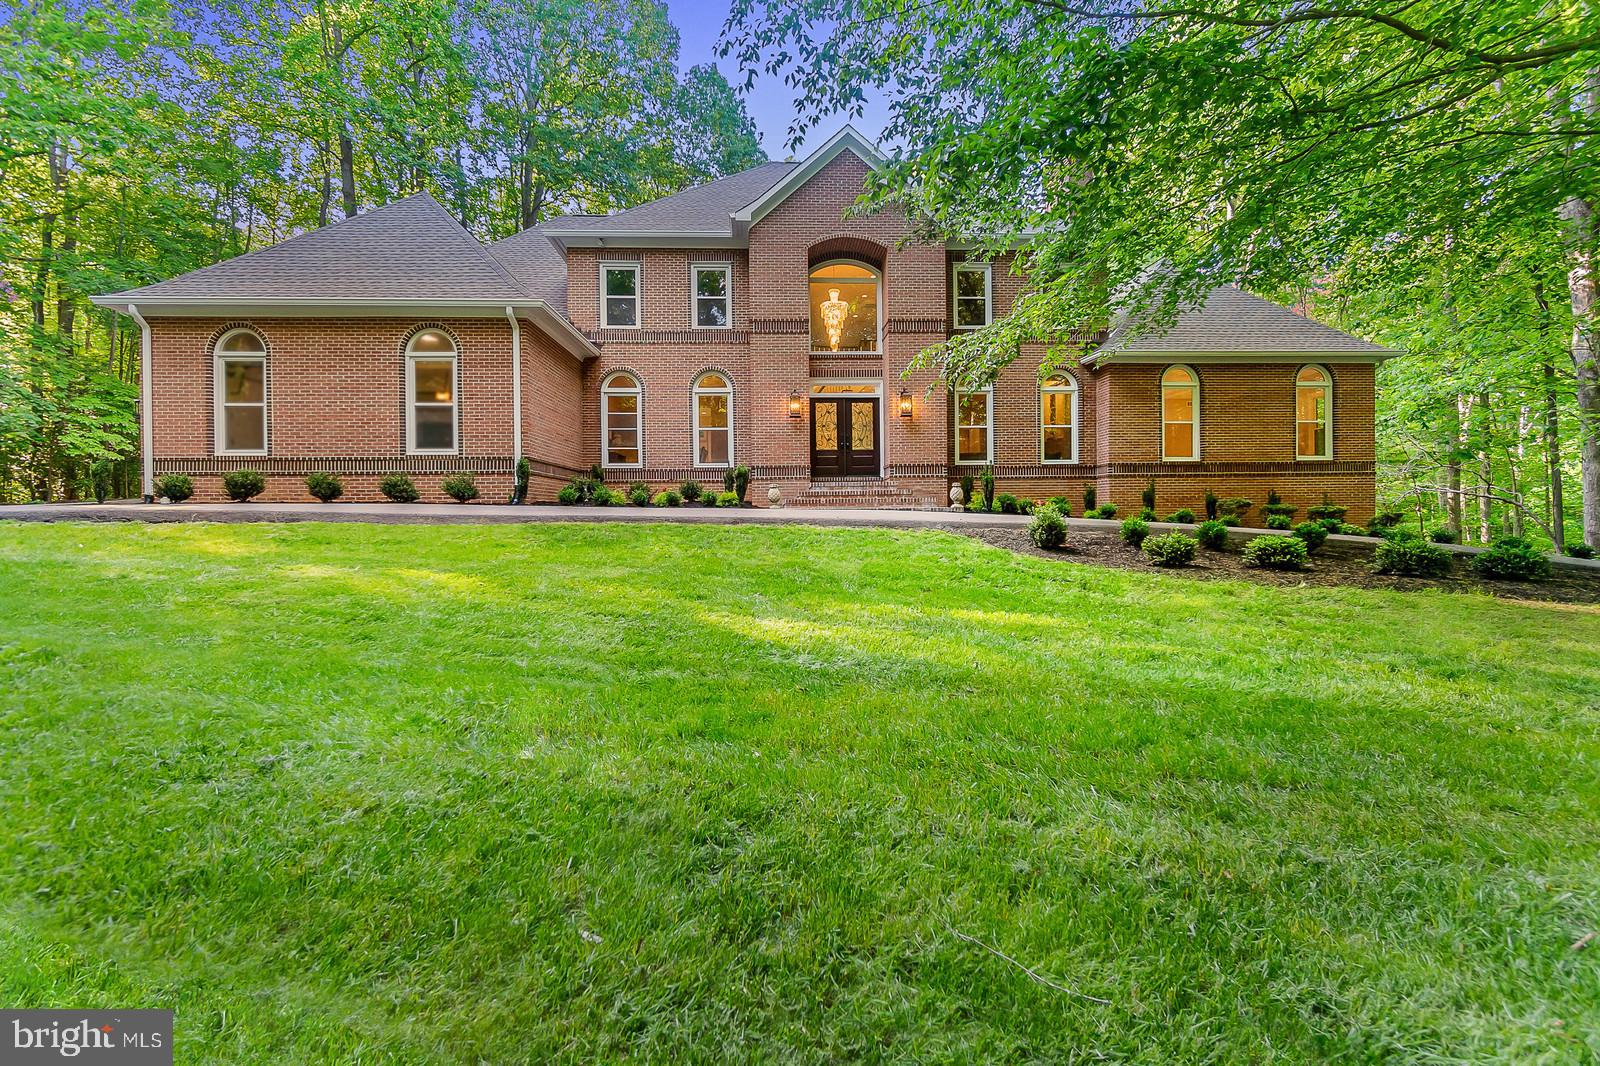 10630 TIMBERIDGE ROAD, FAIRFAX STATION, VA 22039